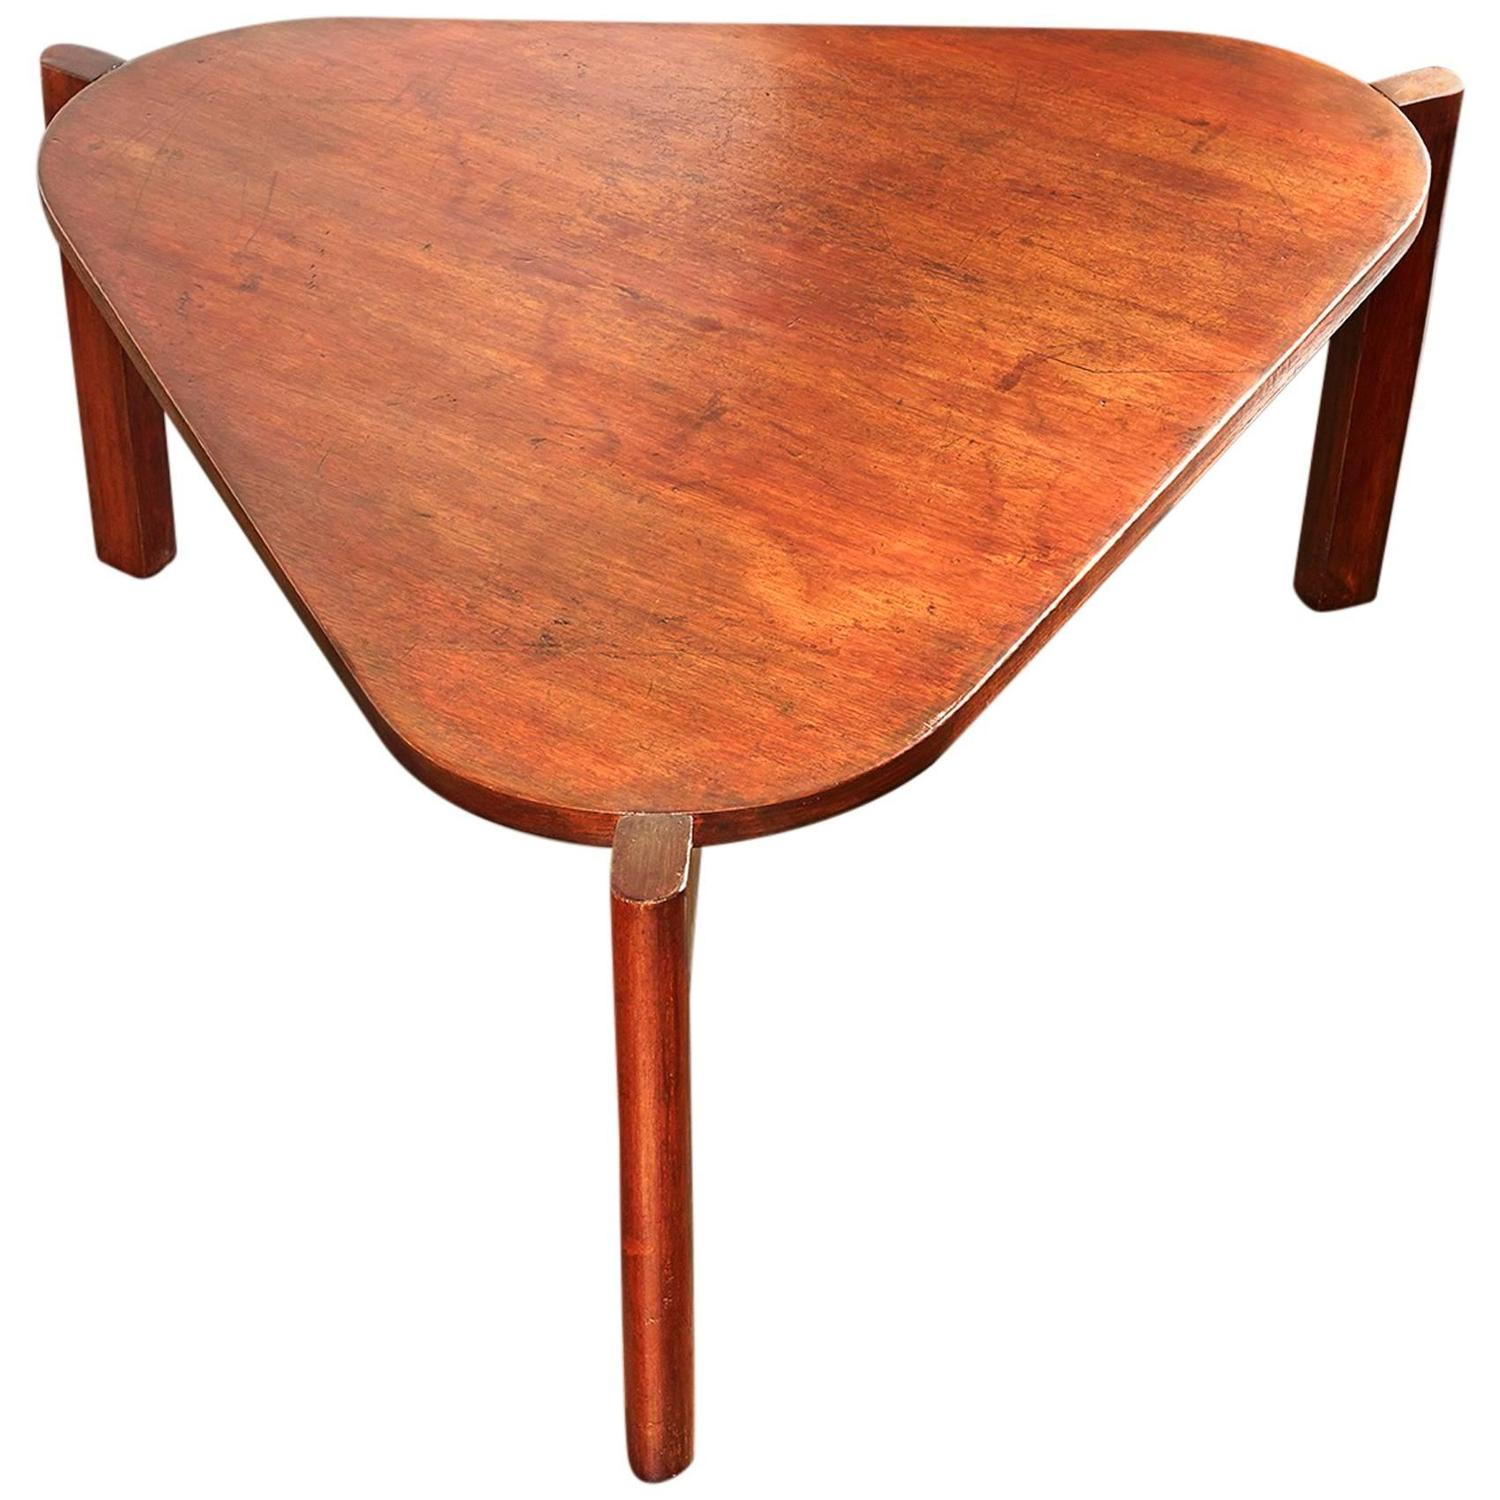 Pierre Jeanneret Triangular Coffee Table Circa 1955 At 1stdibs